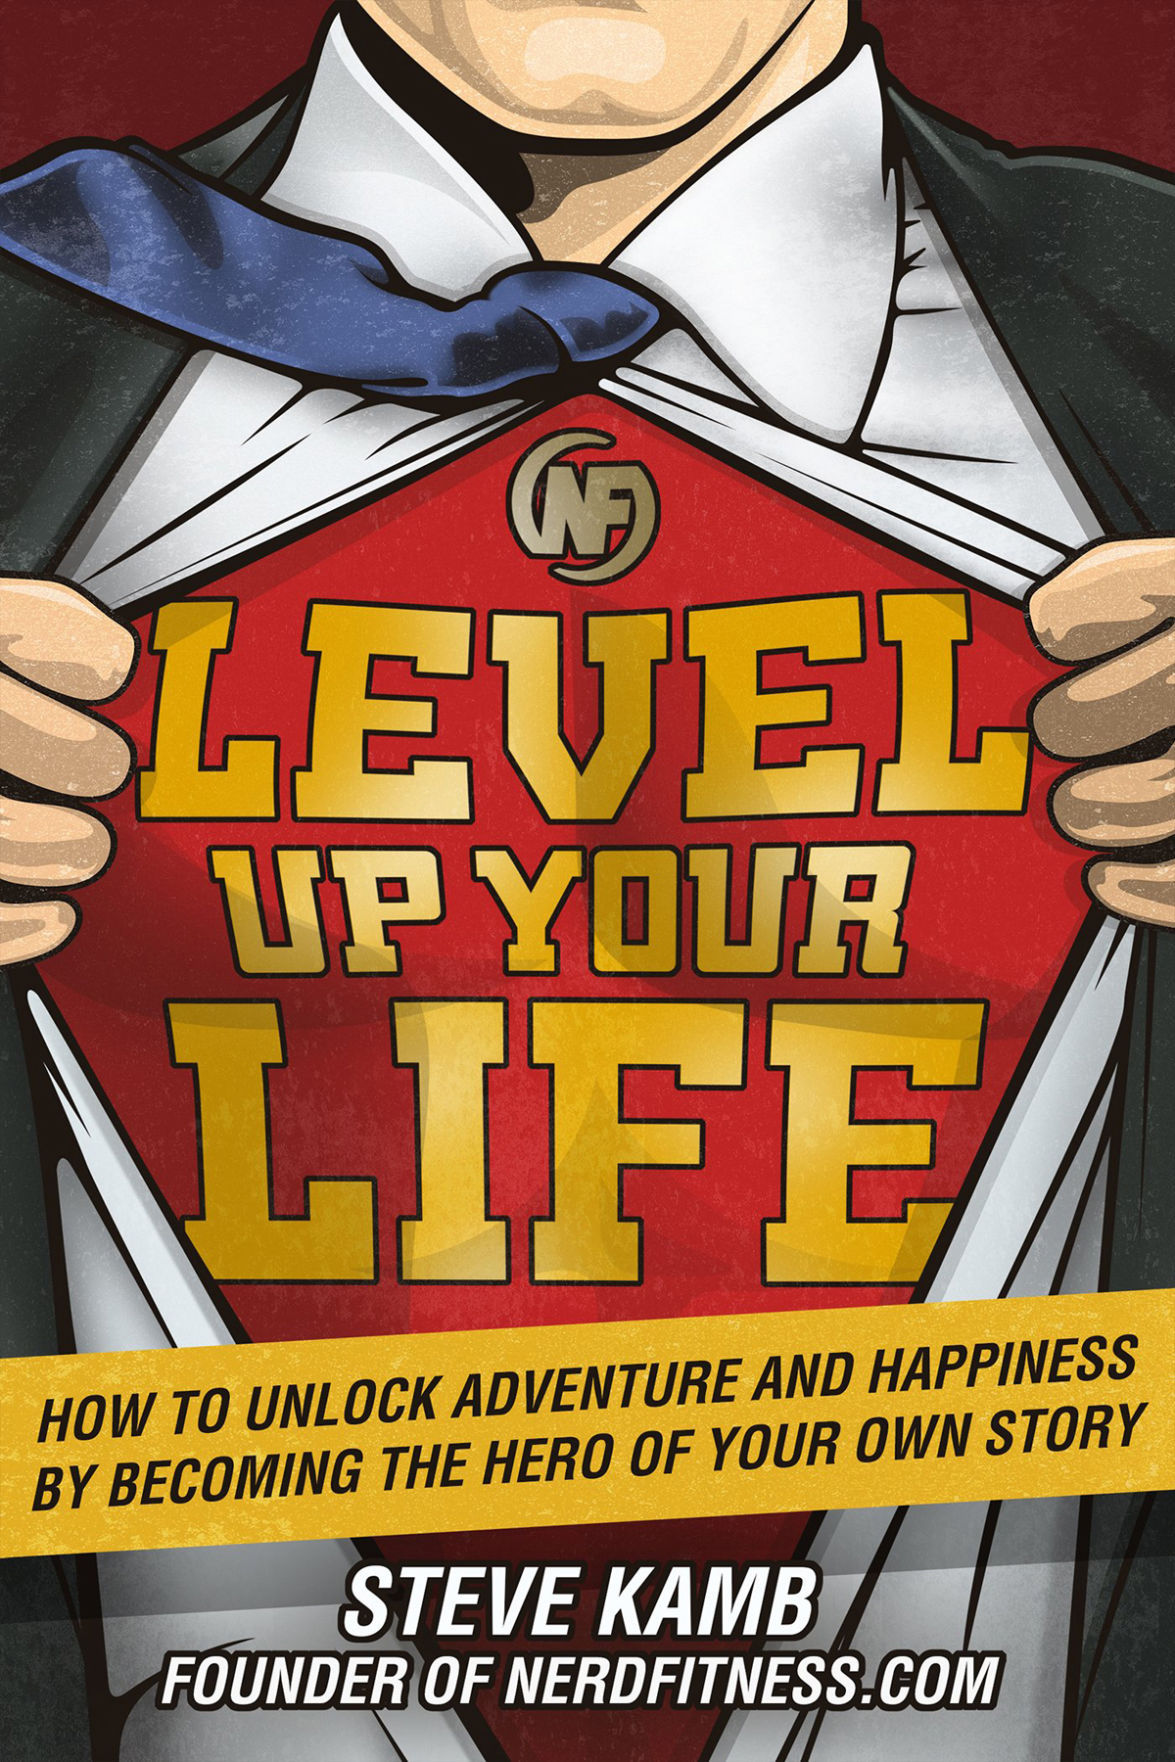 Level Up Your Life (Steve Kamb)